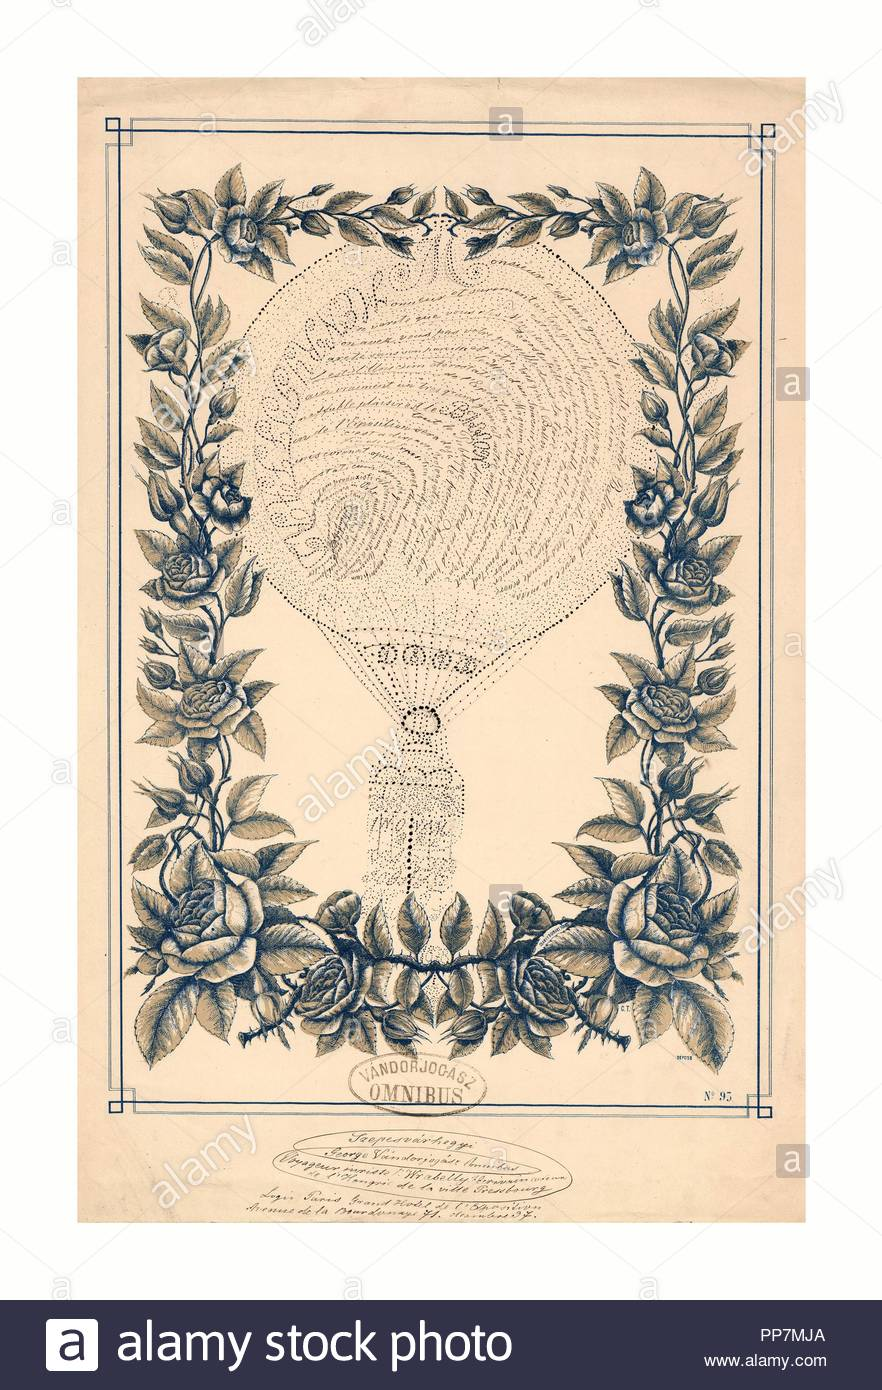 Tribute to French ballonist Henri Giffard in the form of a handwritten French text shaped as a balloon, inside a printed floral border, Clarey & Gibert, Tours., 1878 , Tribute written by Mr. Wrabelly of Hungary, town of Pressbourg (Bratislava), on the occasion of seeing the giant Giffard balloon exhibited in the Tuileries gardens during his visit to the World Exposition held in Paris in 1878. - Stock Image